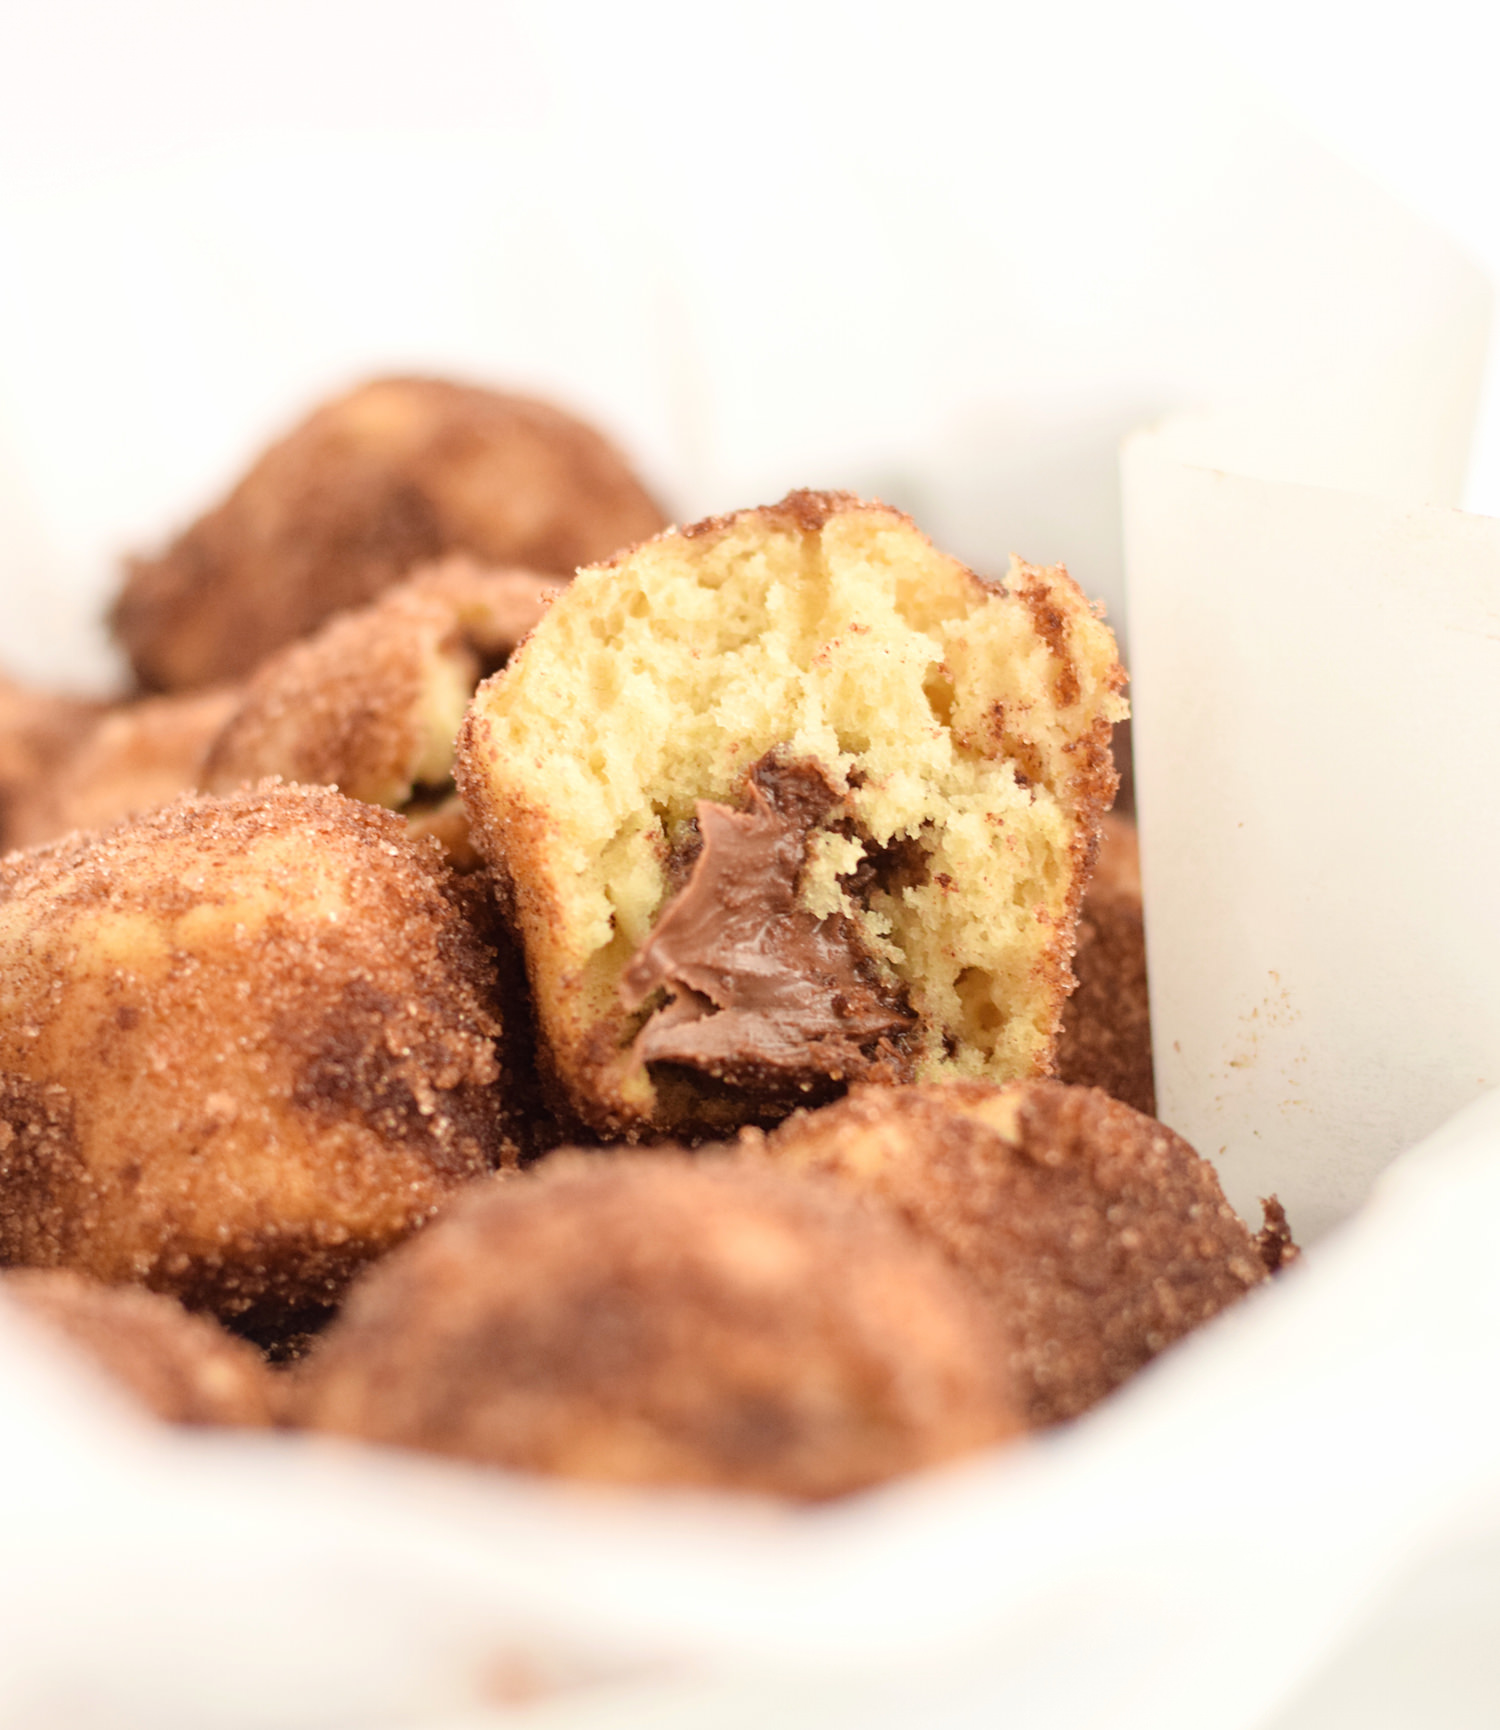 Nutella Churro Donut Muffins: soft, fluffy baked donuts dipped in melted butter, coated in cinnamon and sugar, and filled with Nutella! | TrufflesandTrends.com